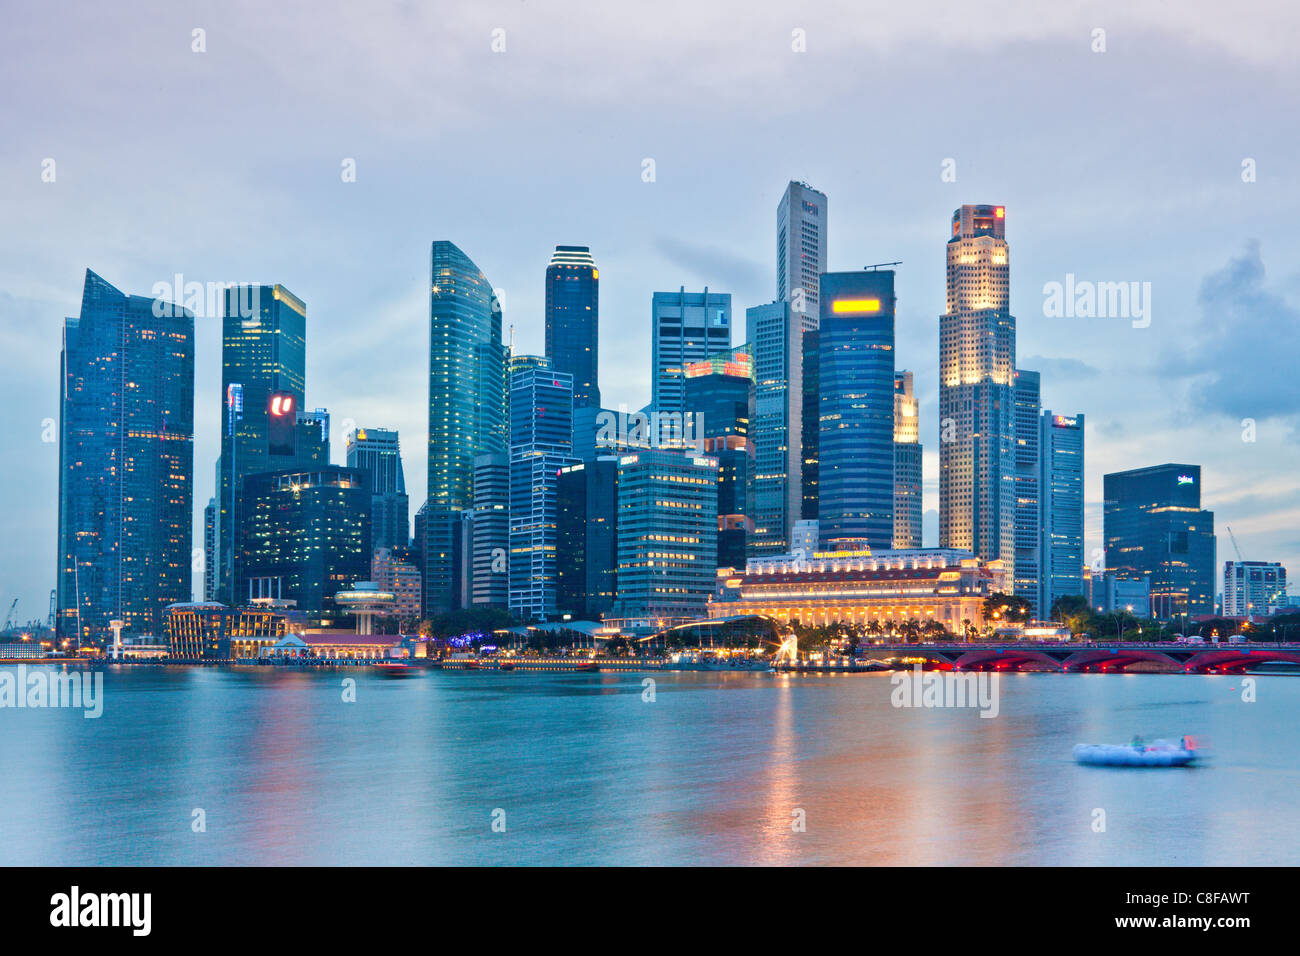 Singapore, Asia, Downtown, blocks of flats, high-rise buildings, evening, lights, illumination, dusk, twilight, - Stock Image